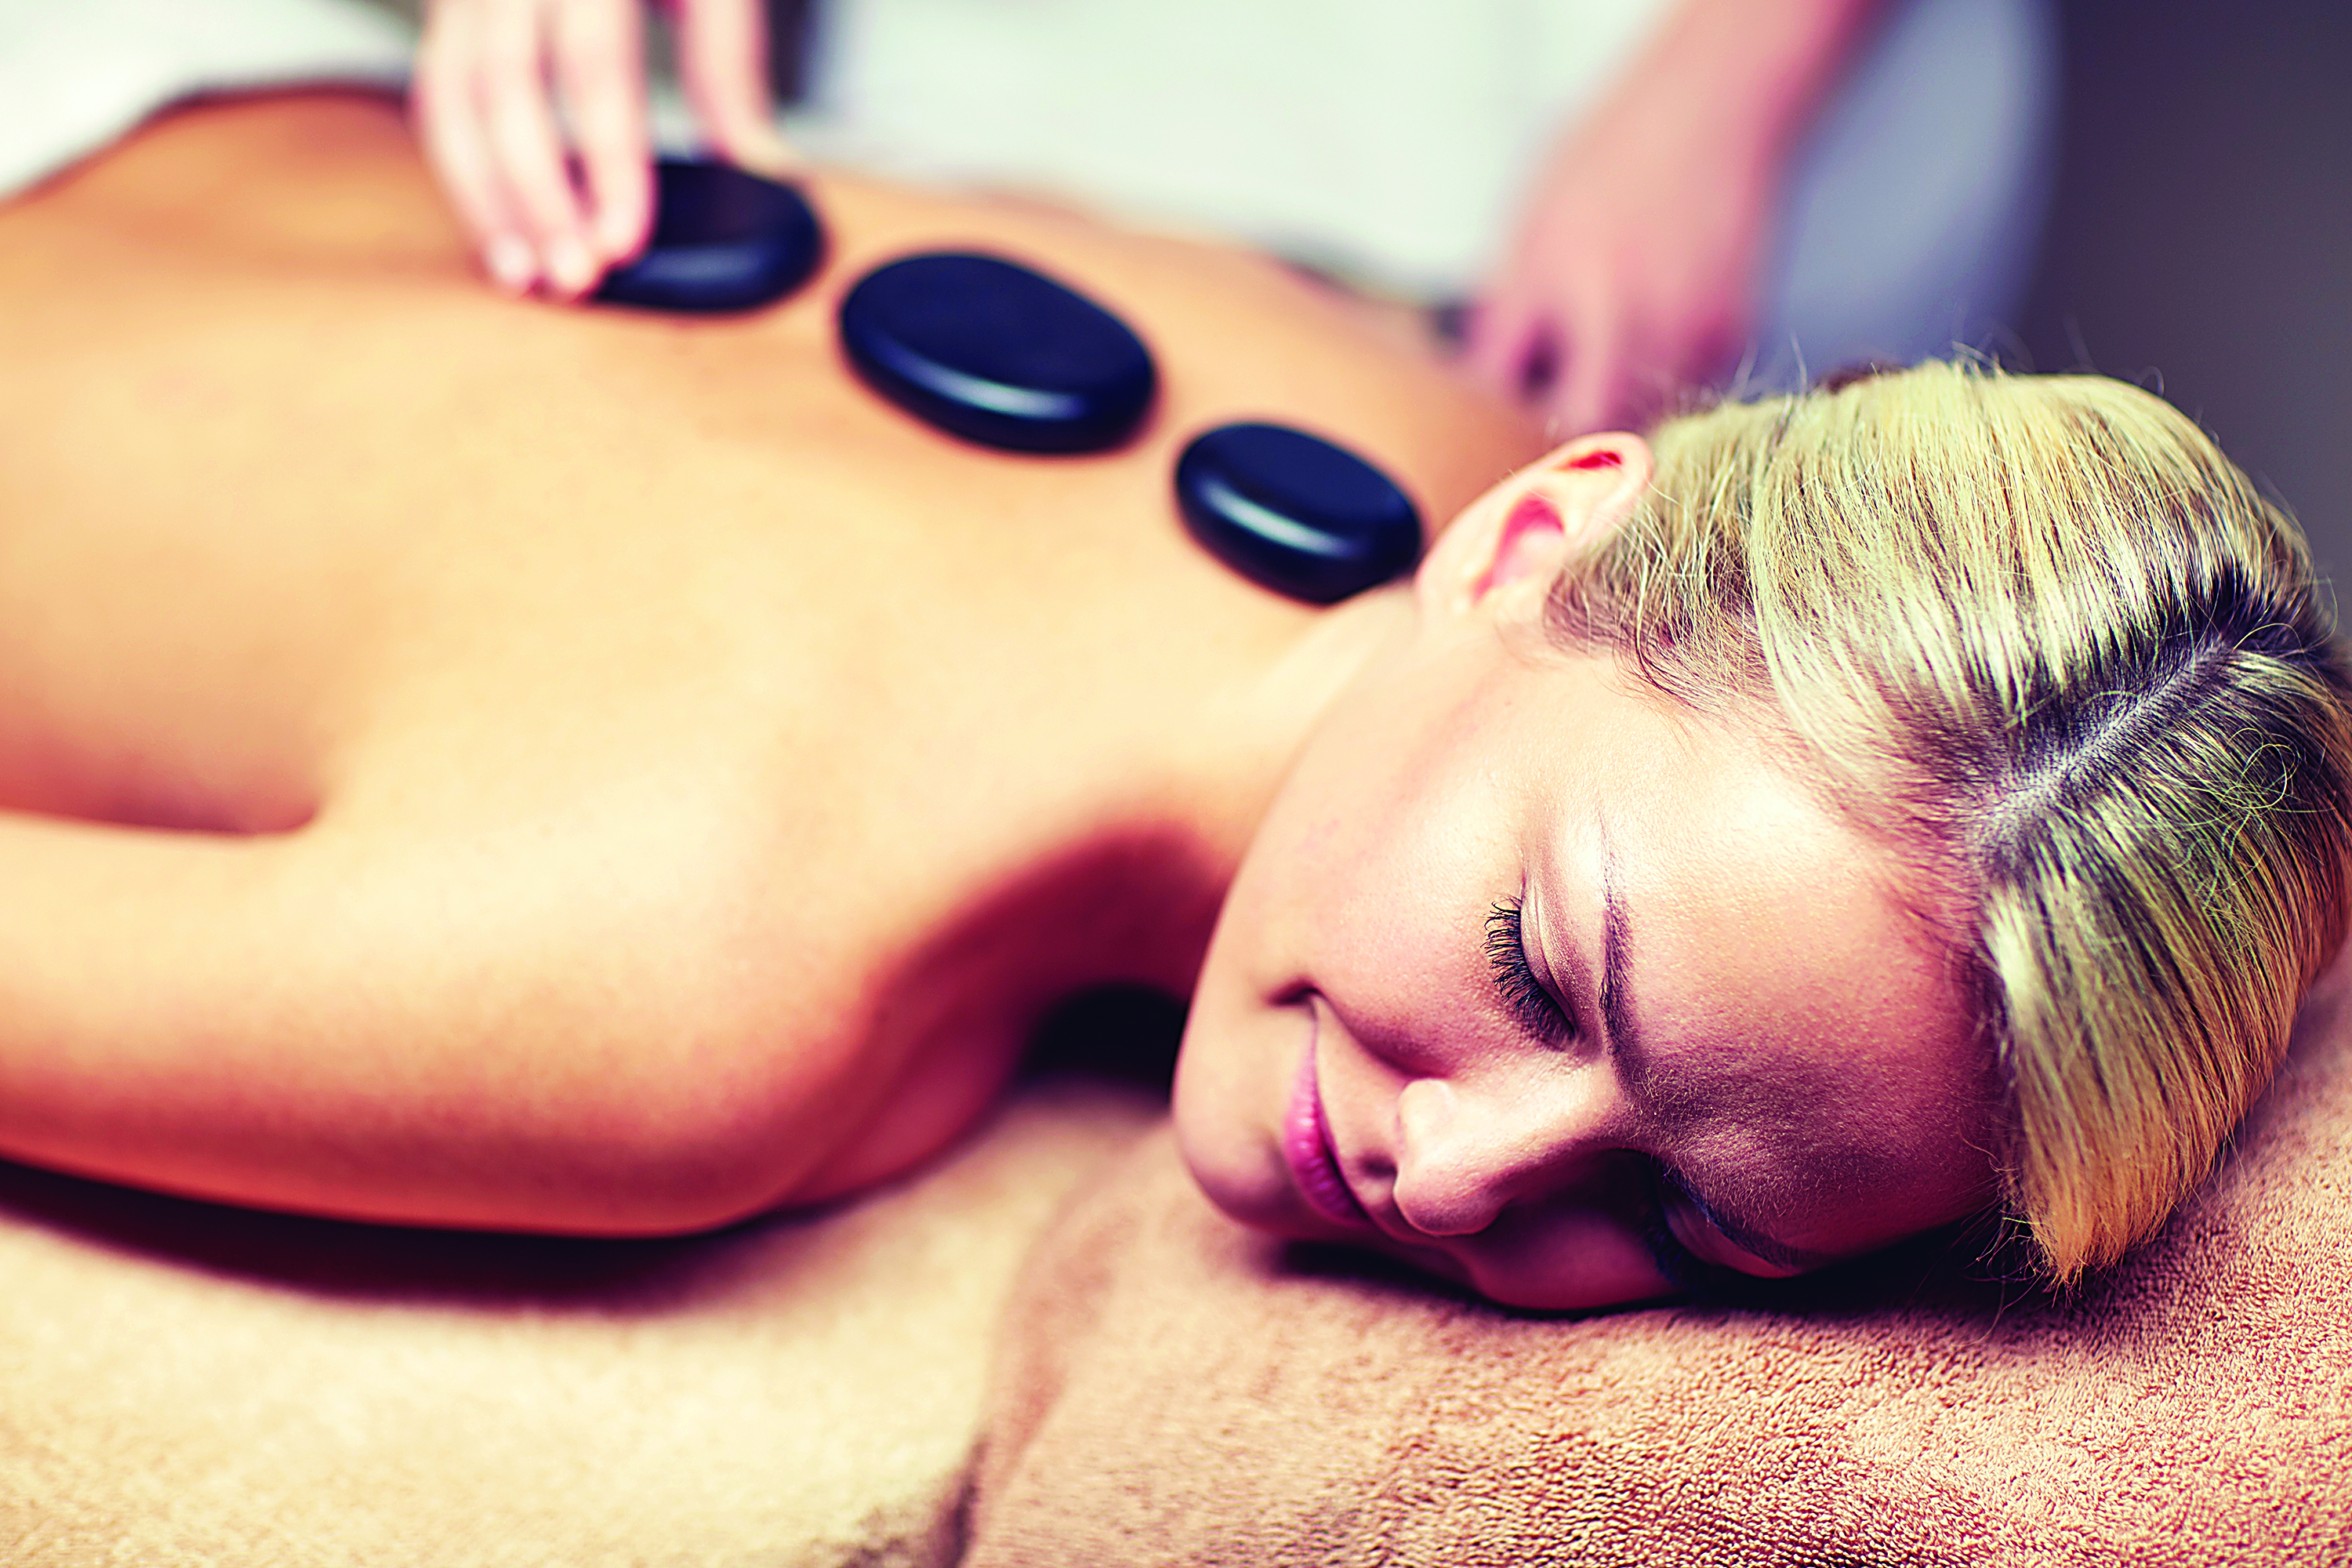 Massage-rocks-shutterstock_349214081